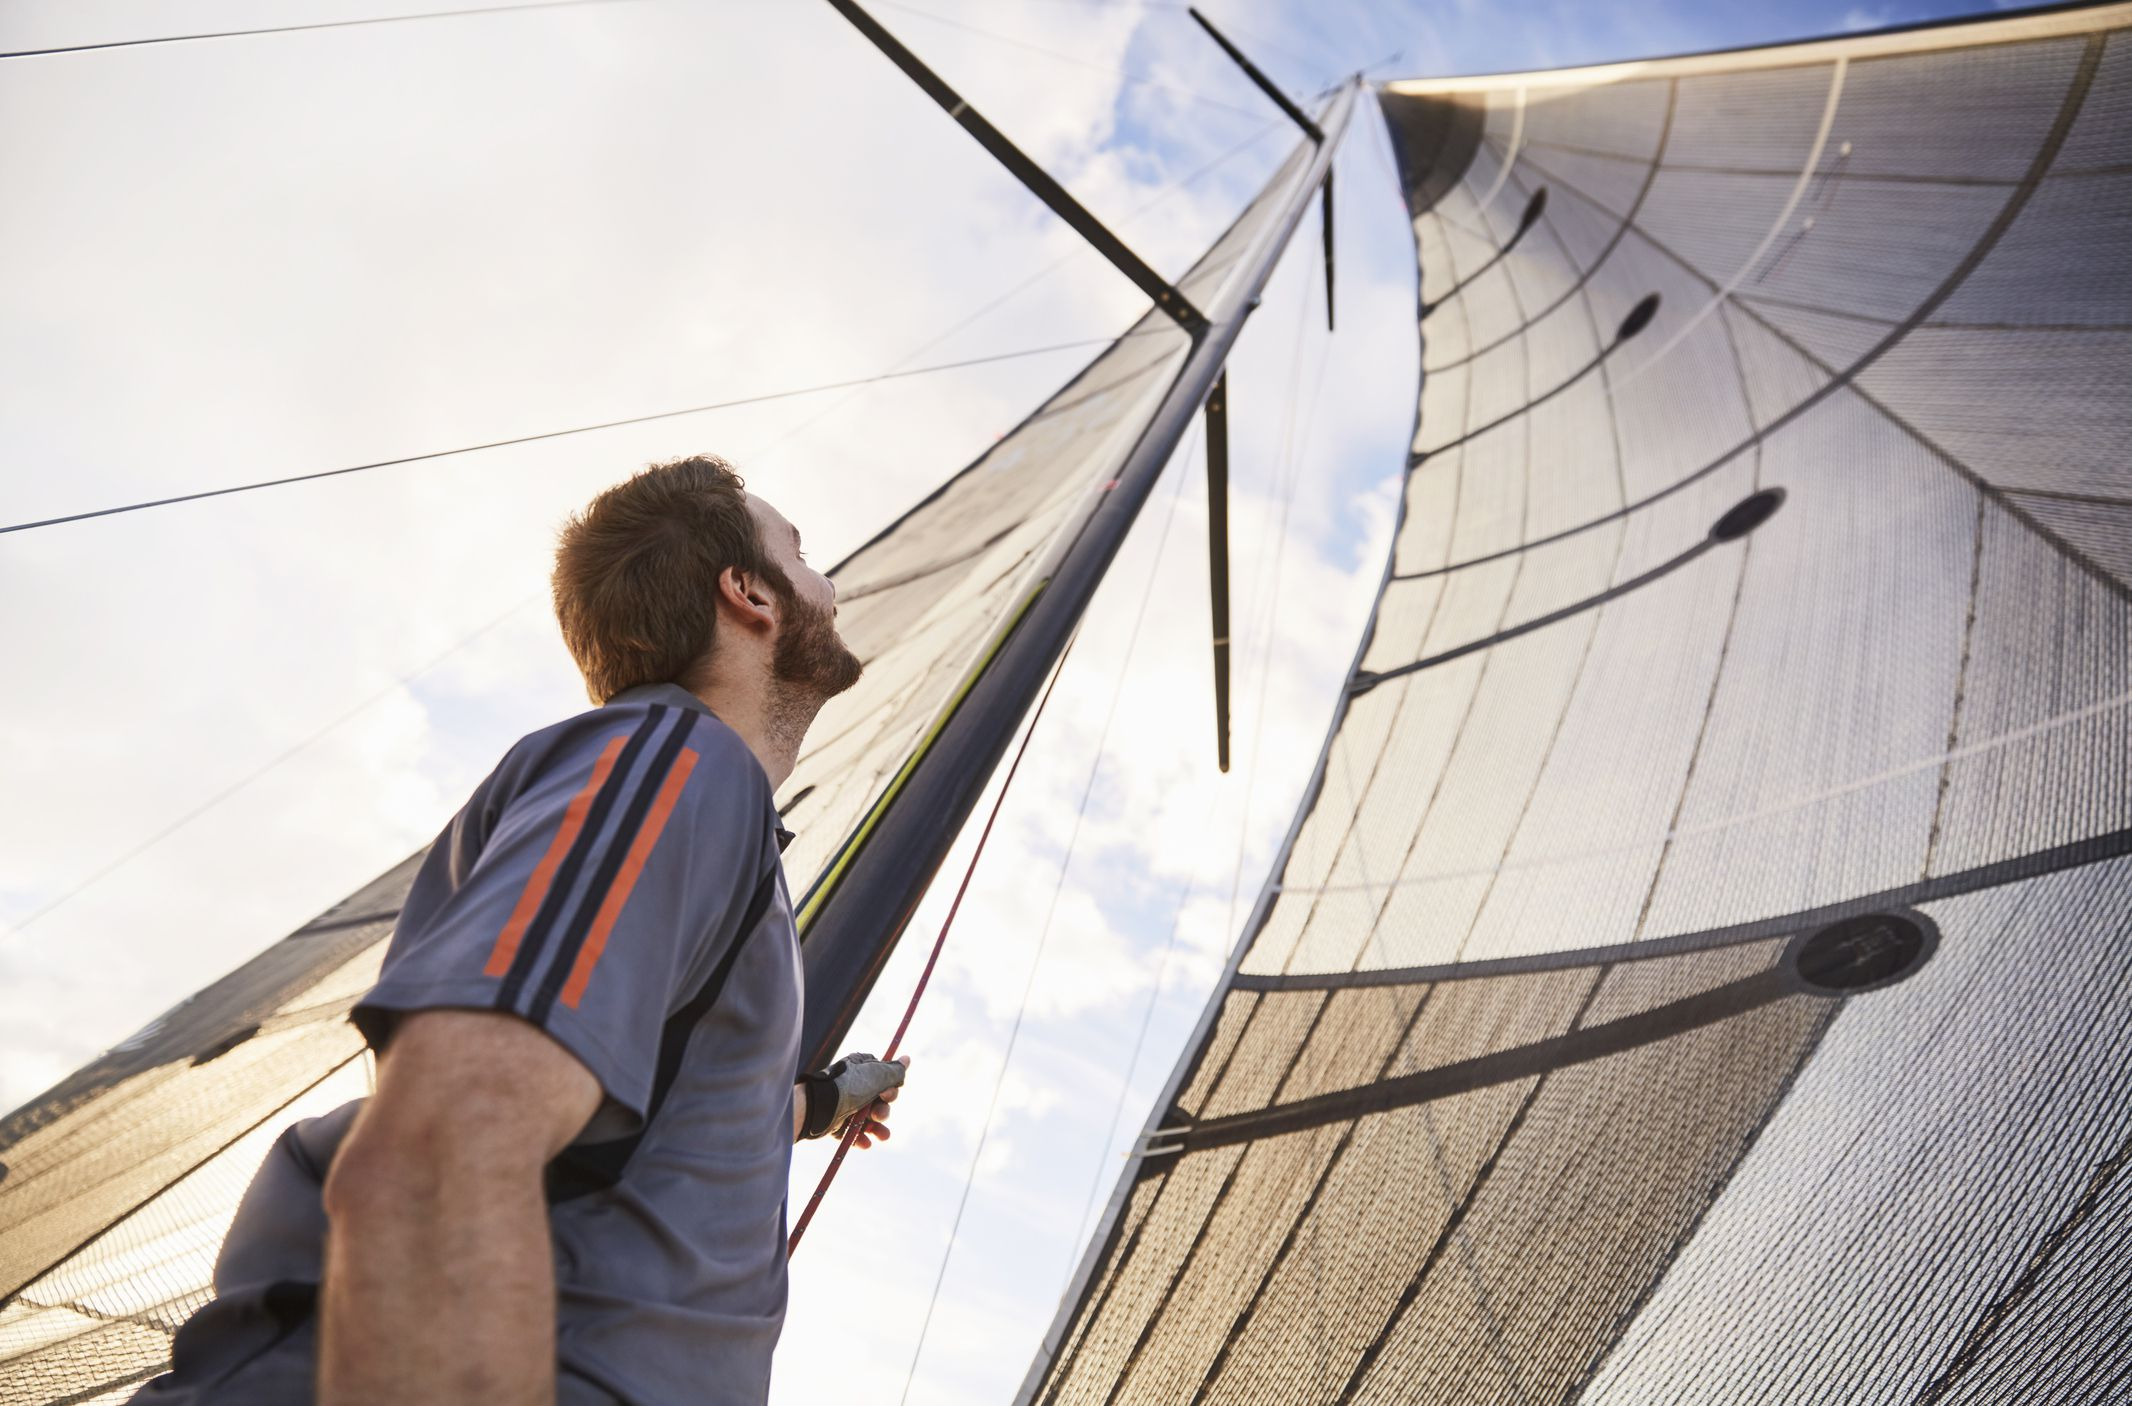 mainsail trimming an illustrated guide